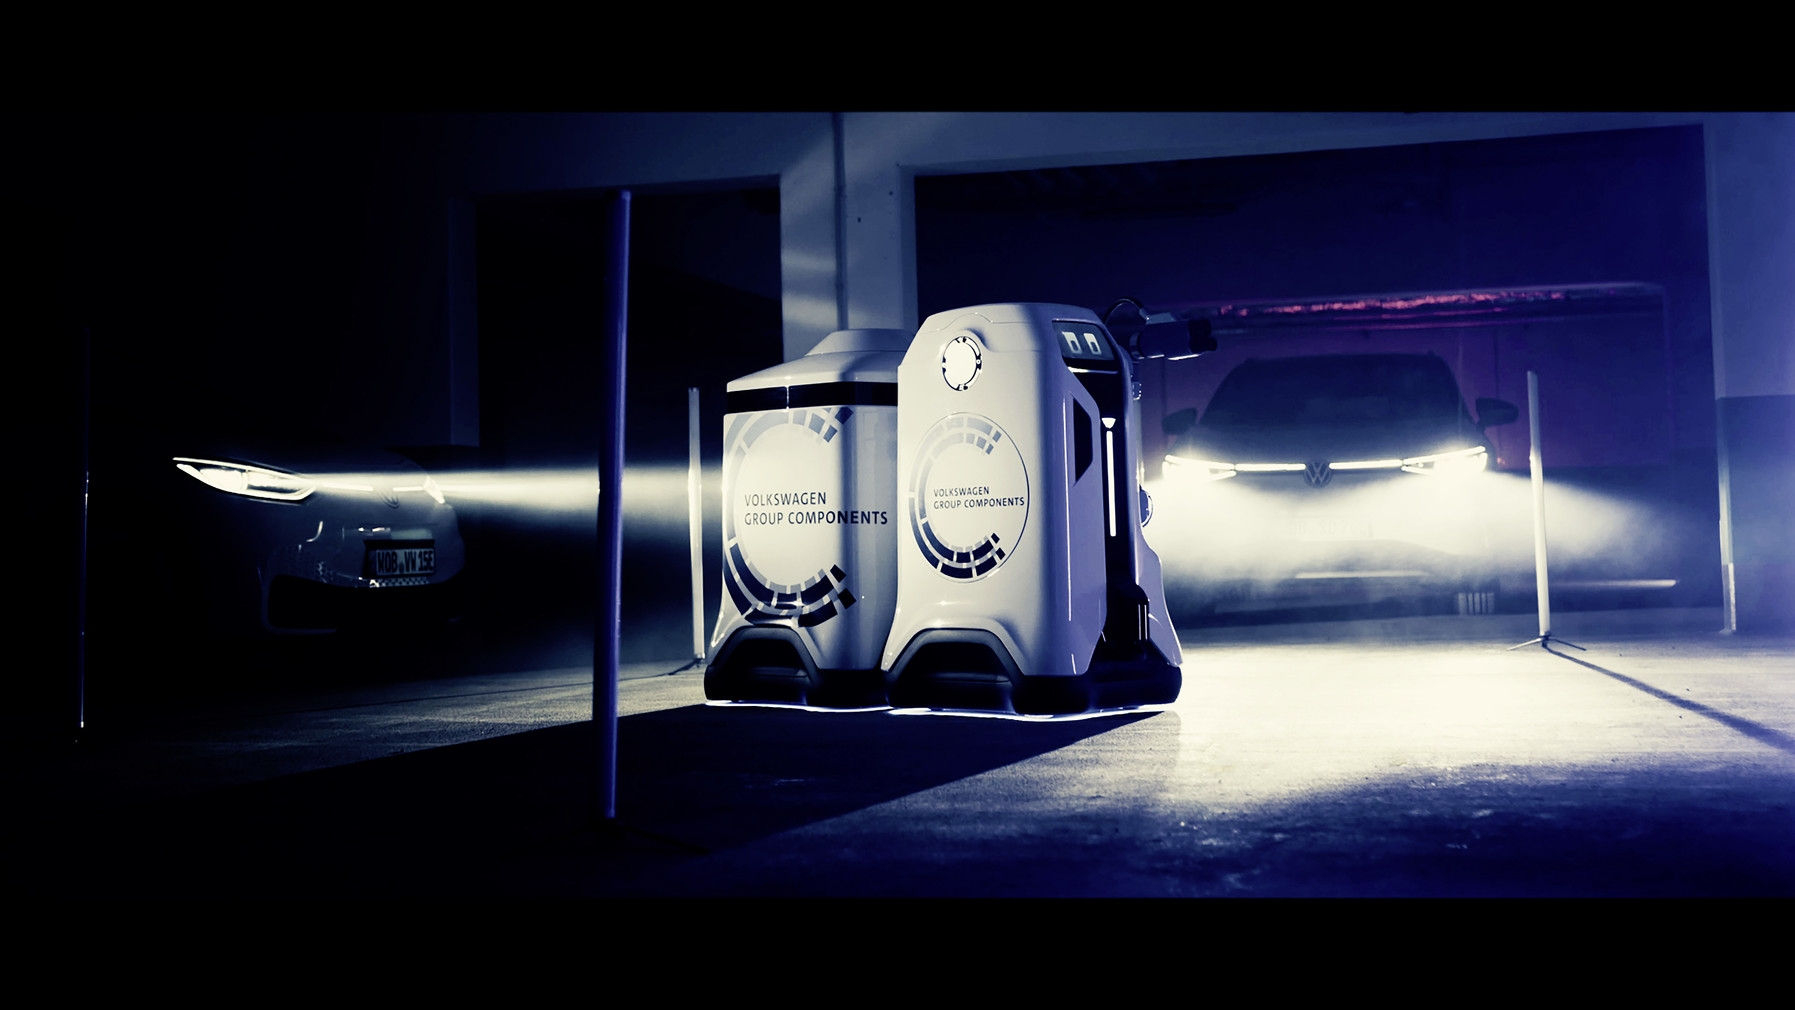 vw-previews-mobile-charging-robot-2